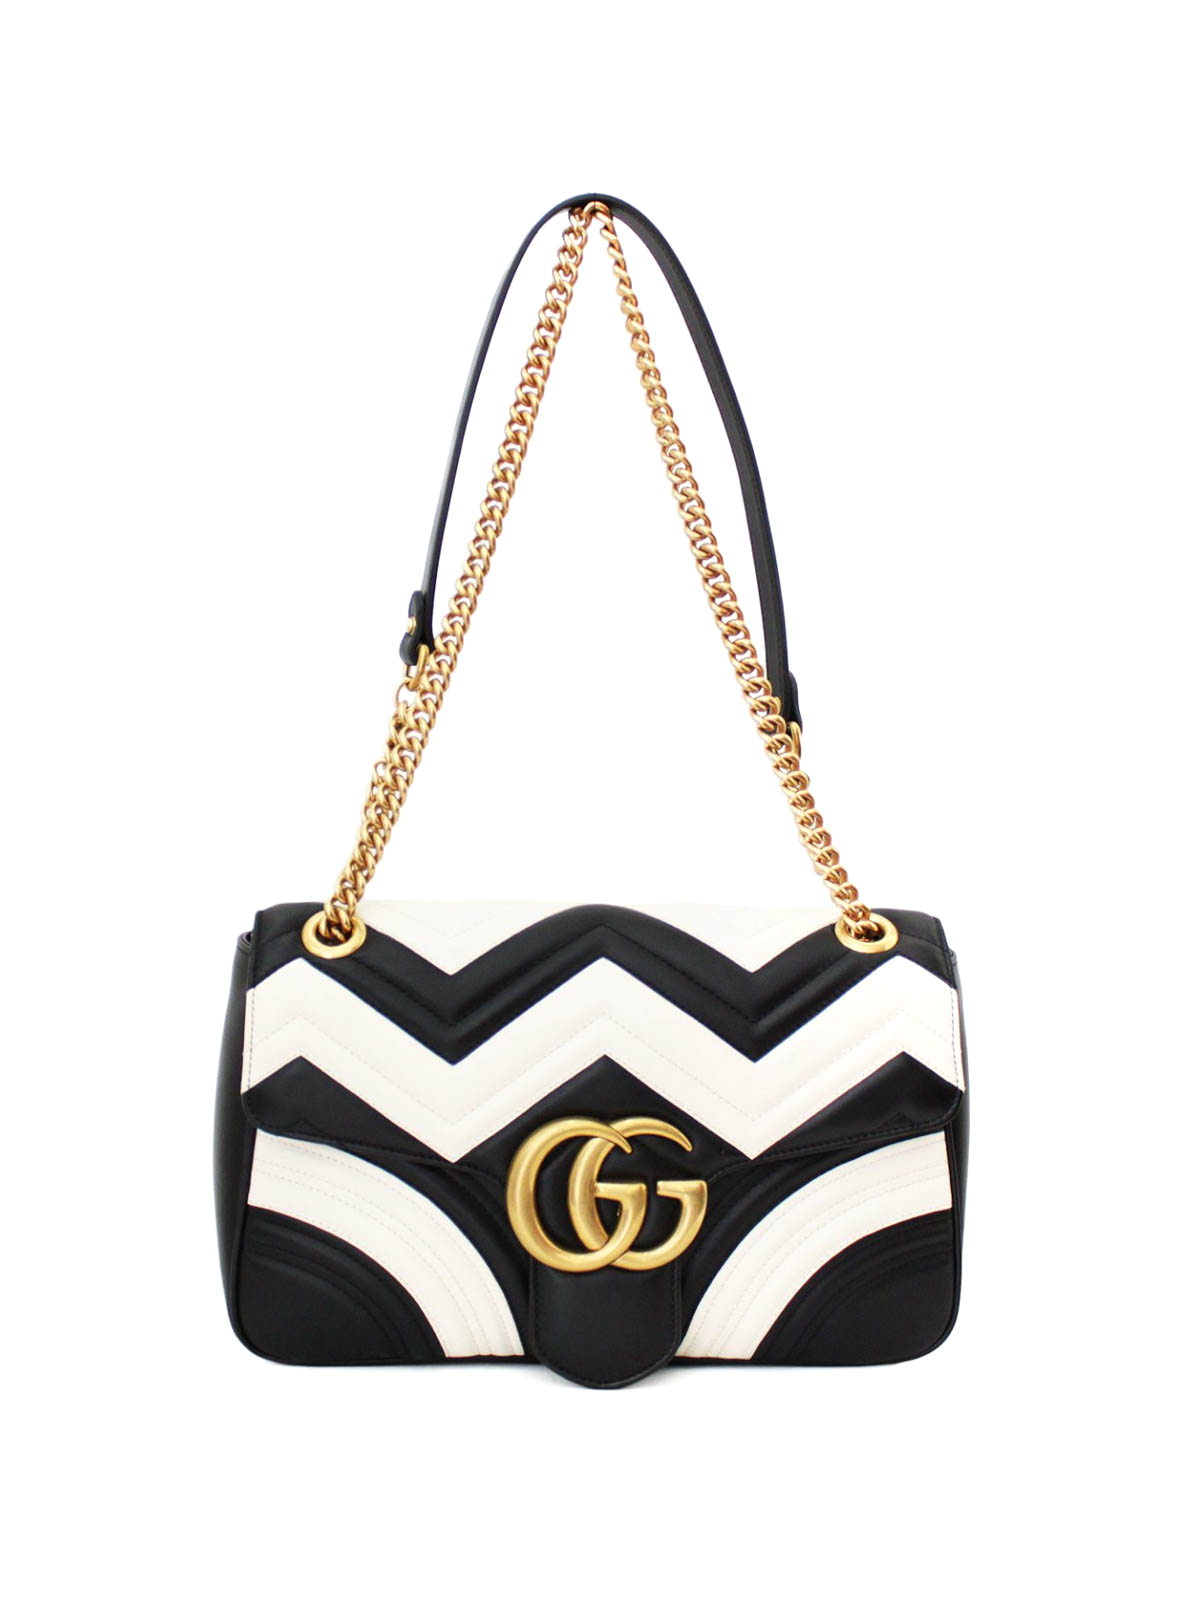 5245480f4e1024 Gucci - GG Marmont matelassé shoulder bag - shoulder bags - 443496 ...